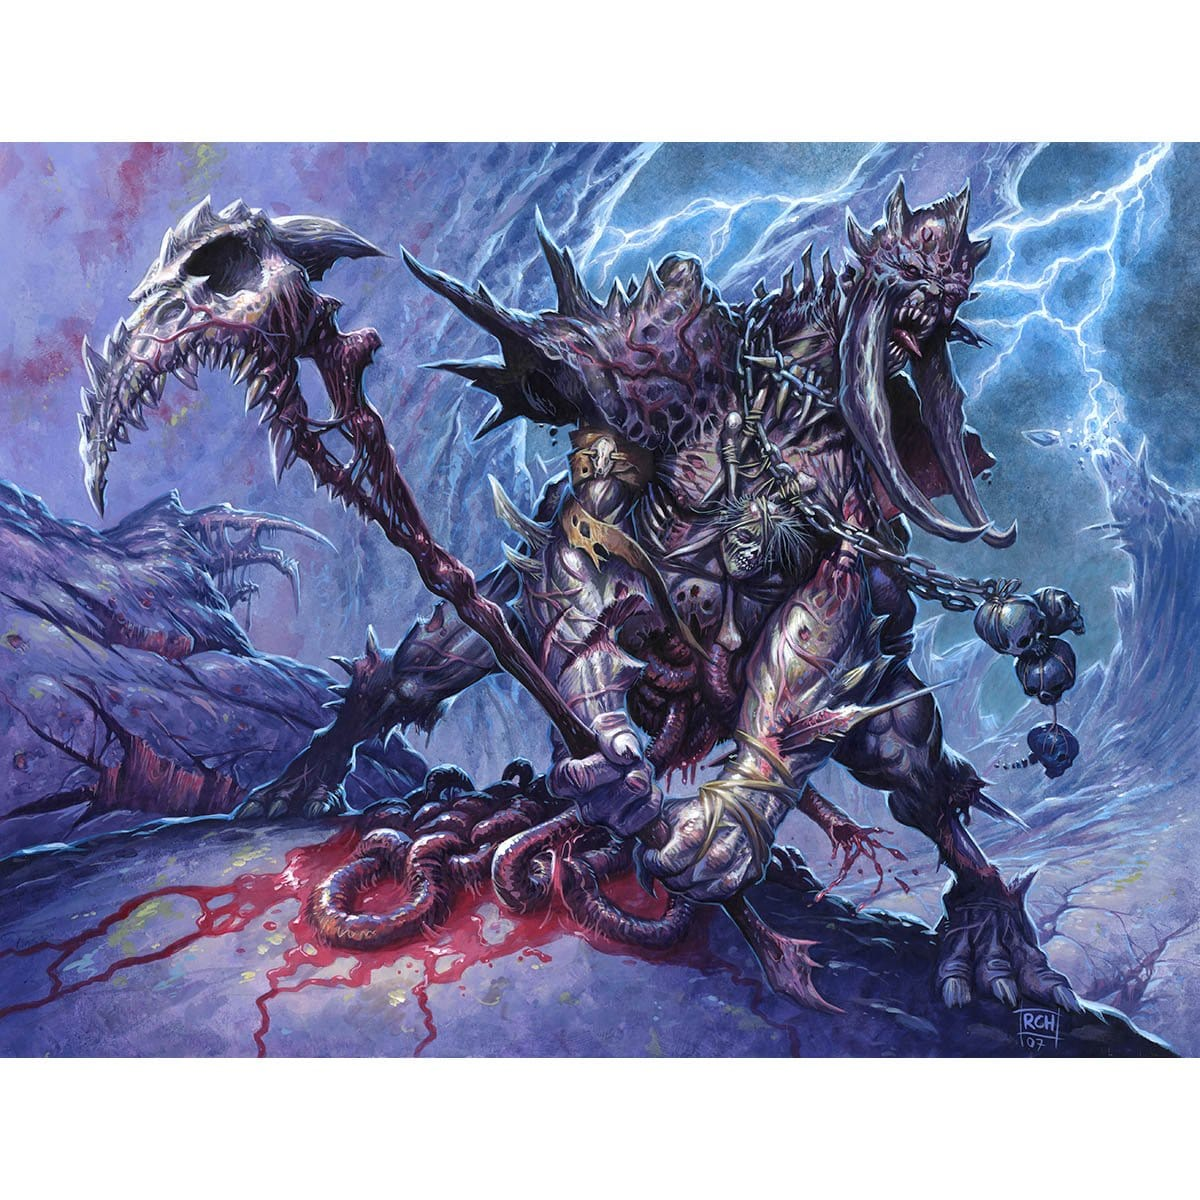 Viscera Dragger Print - Print - Original Magic Art - Accessories for Magic the Gathering and other card games